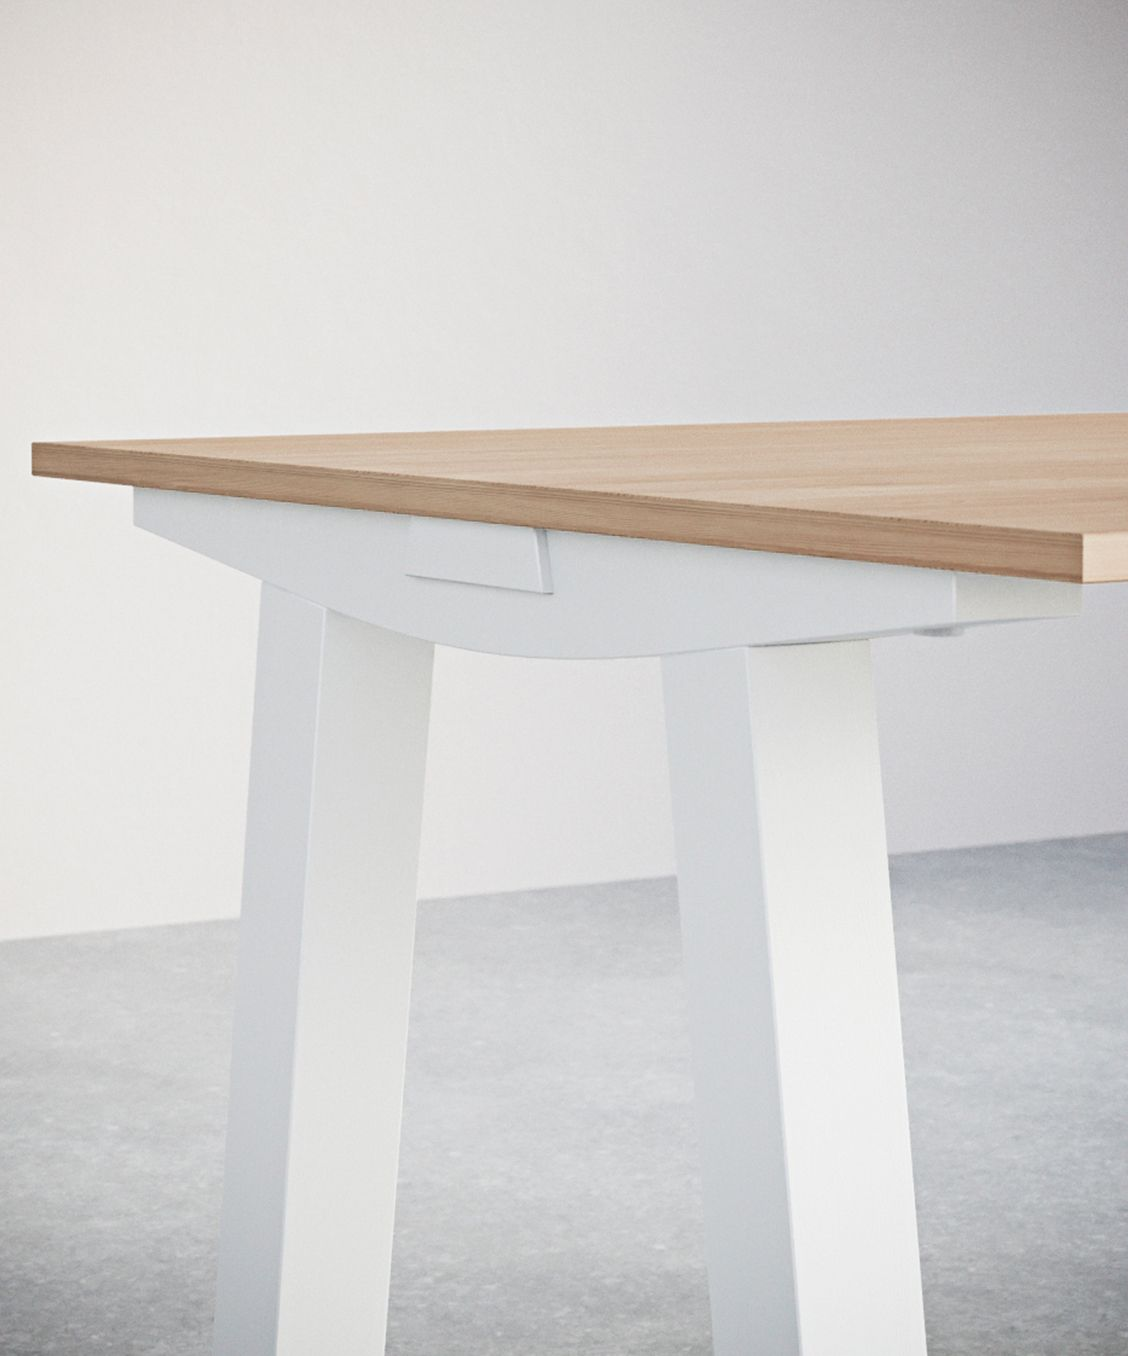 NOMI table for home